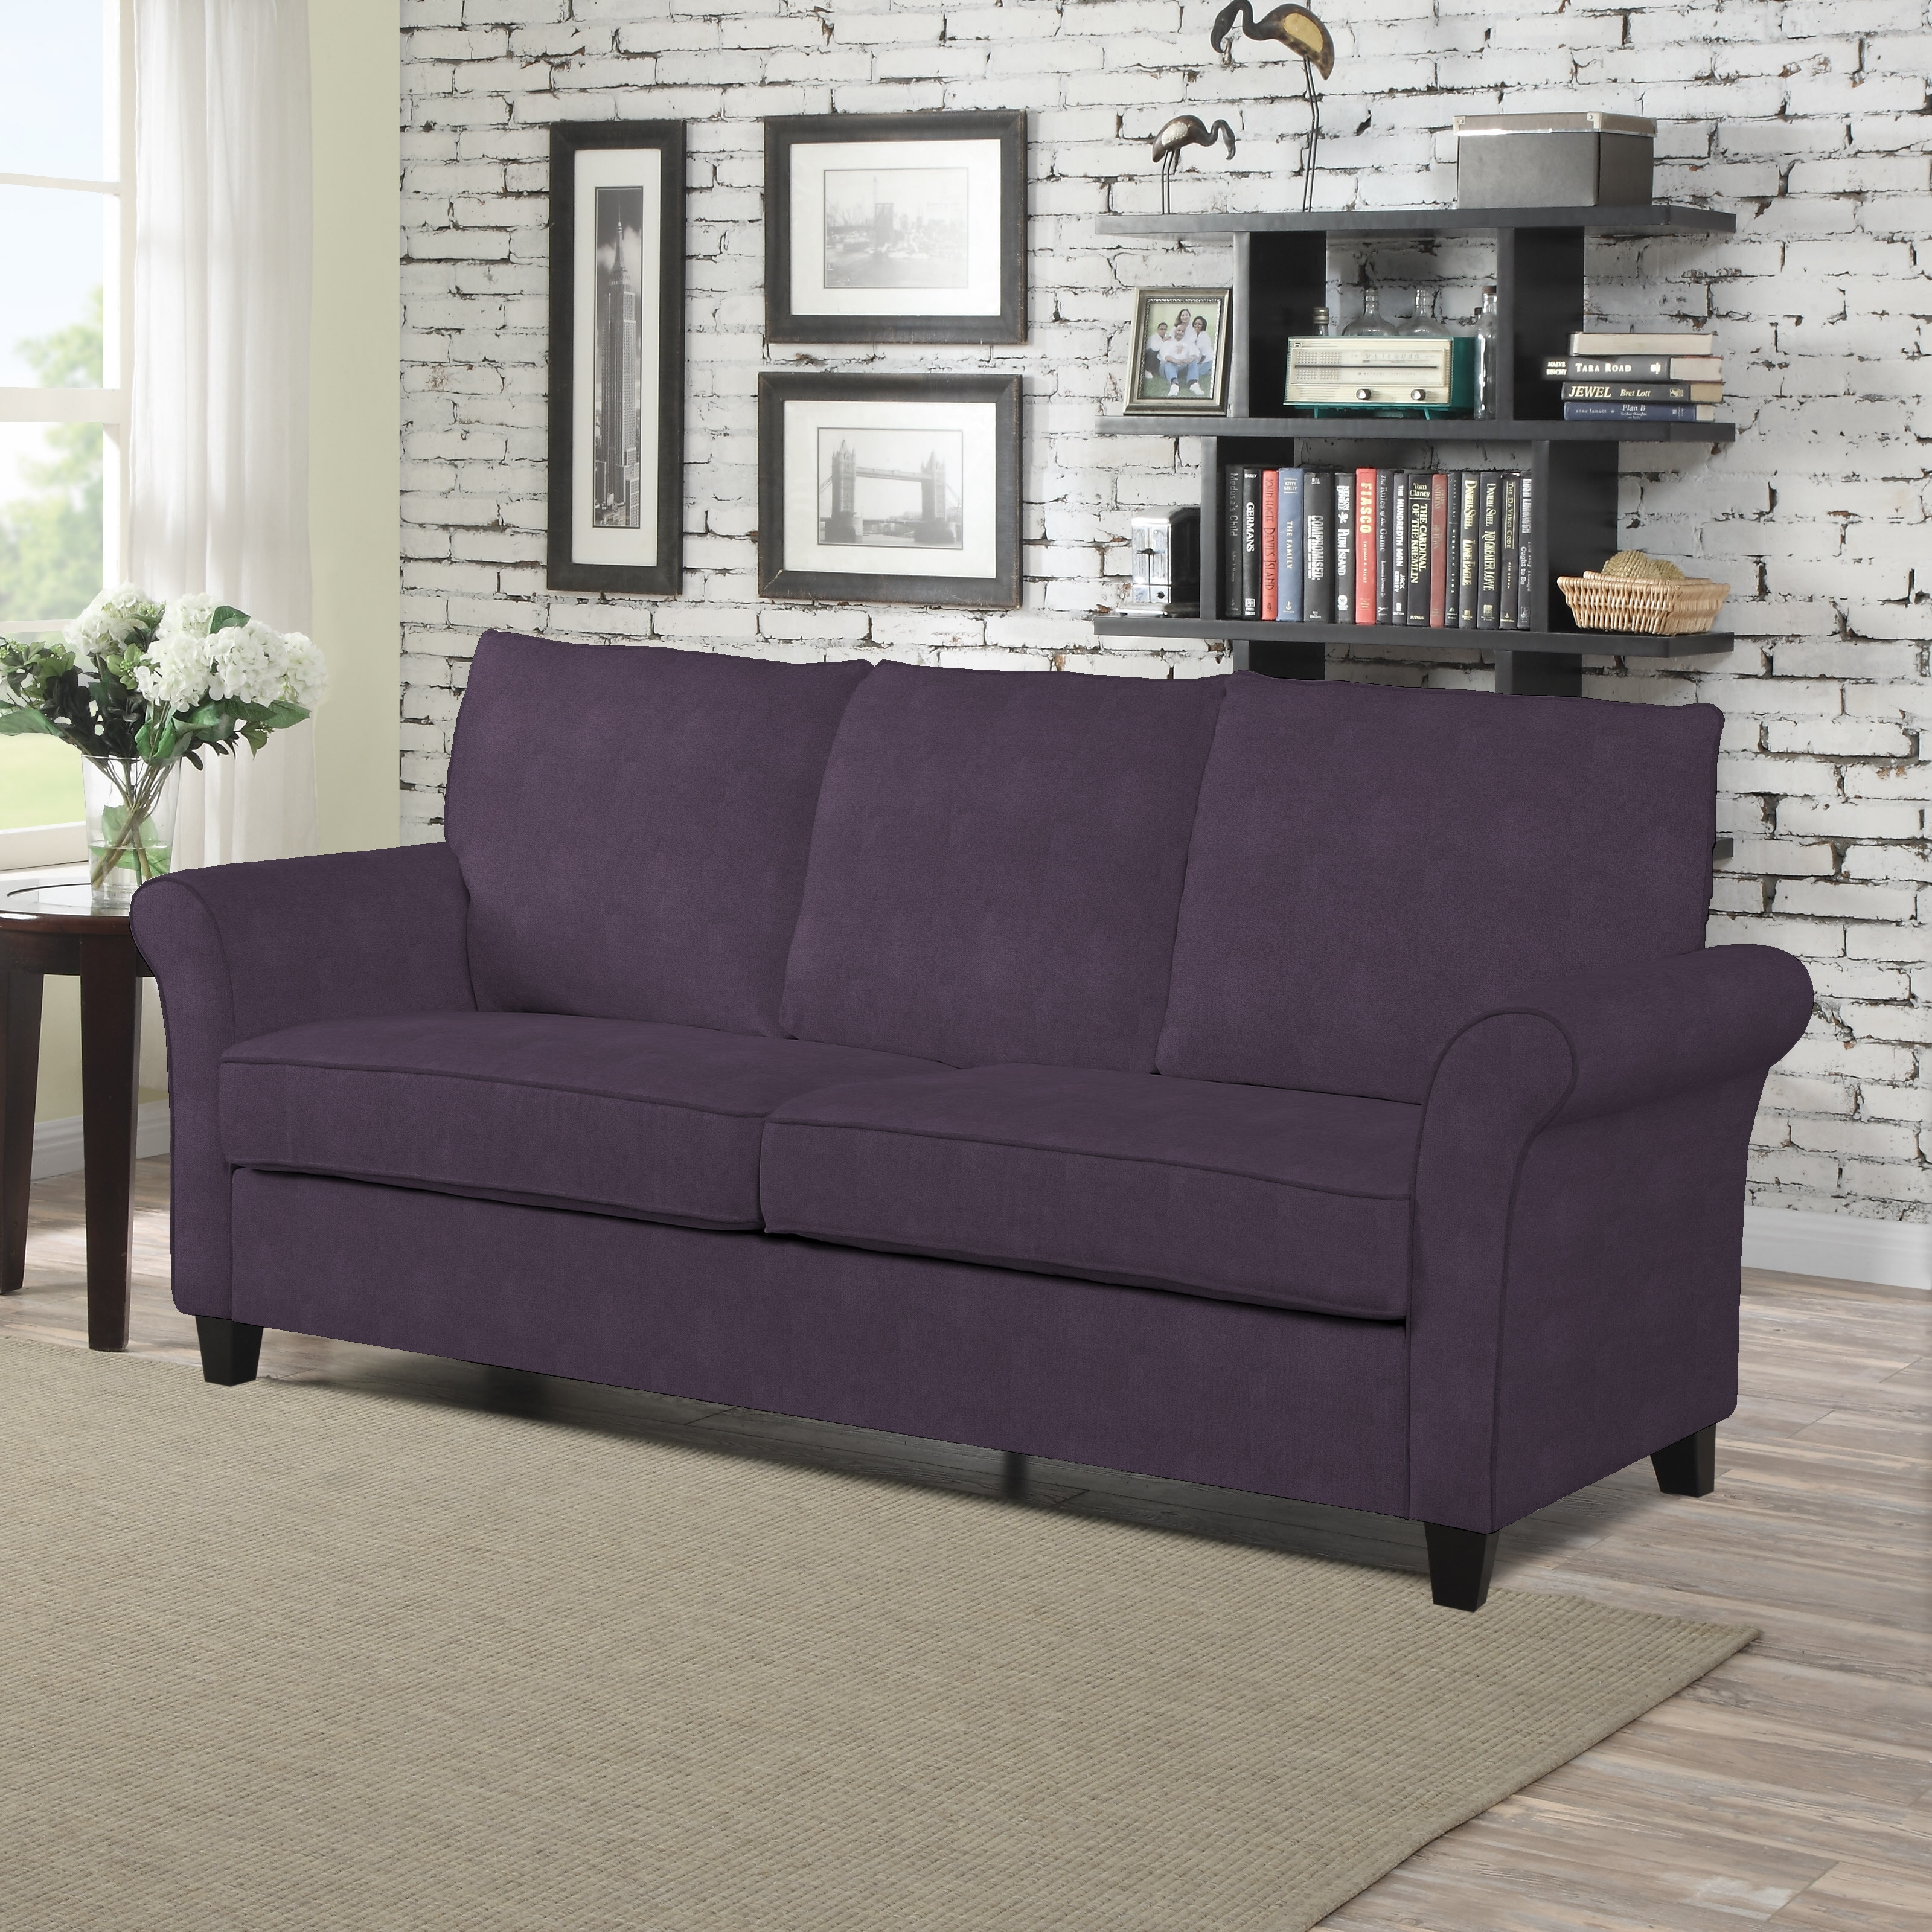 velvet back plum winged christopher product high garden ships home loveseat overstock canada nolie by tufted to knight